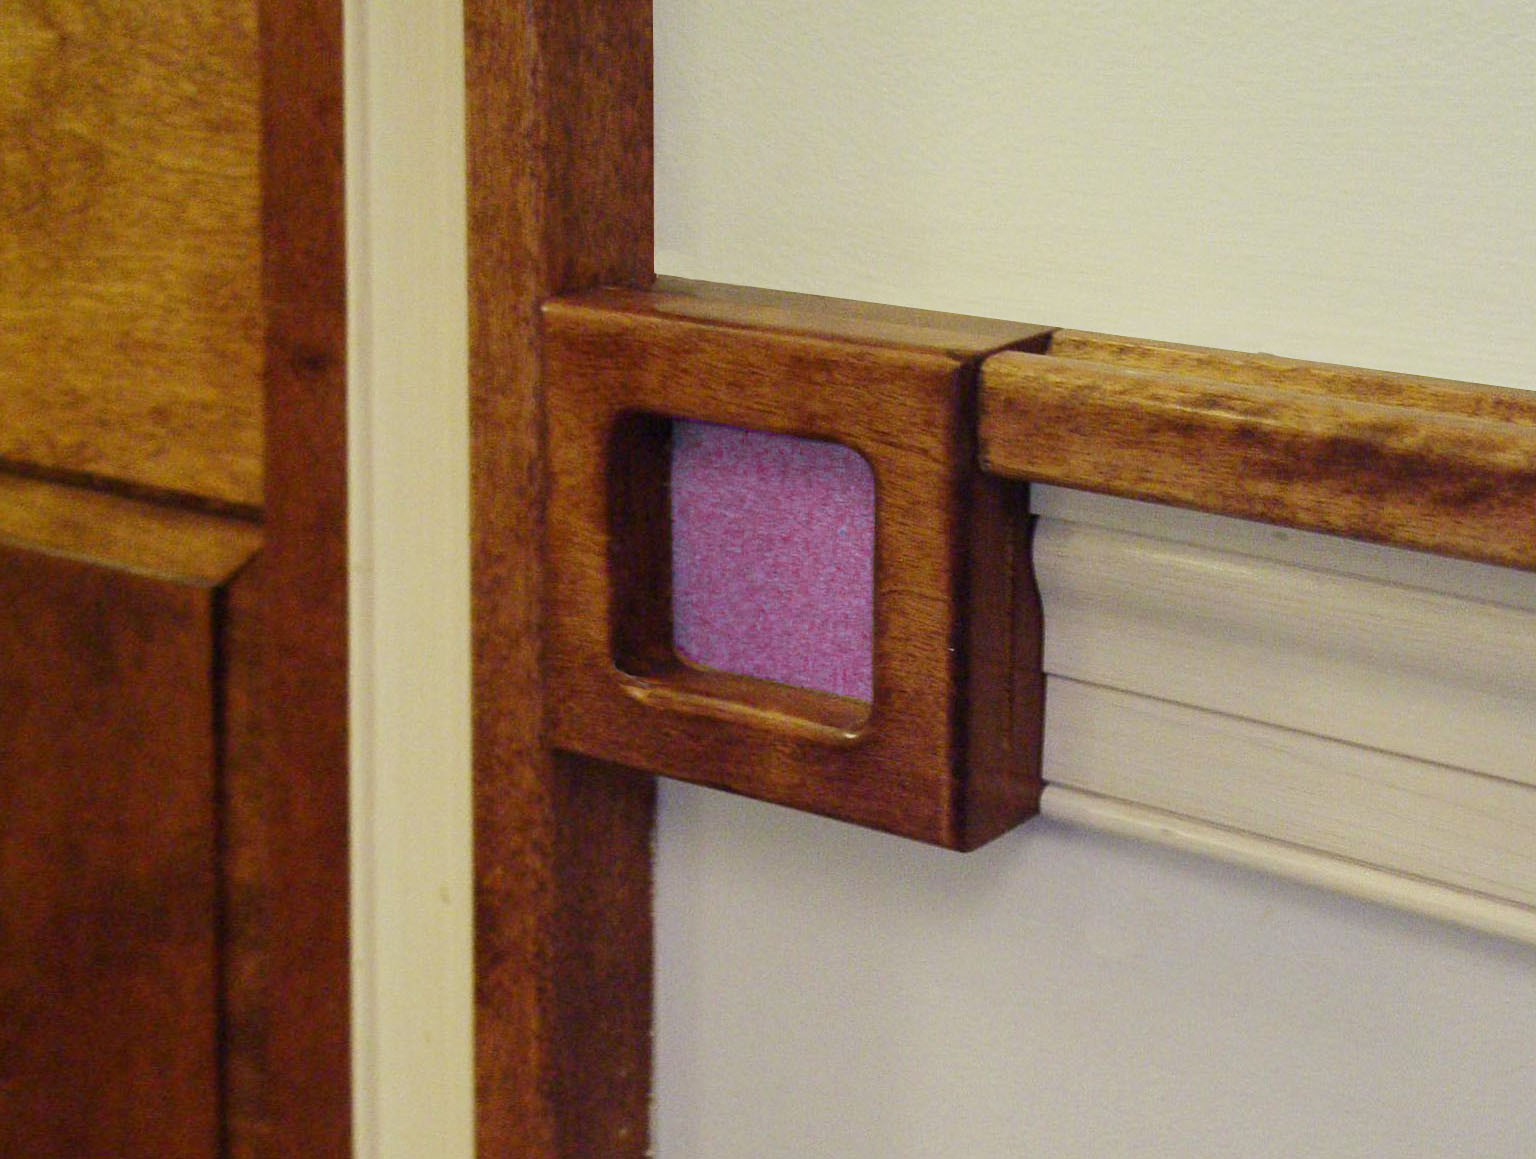 Inserts next to each bedroom door have uniquely different colors and textures so that the most severely impaired students can still identify their room.